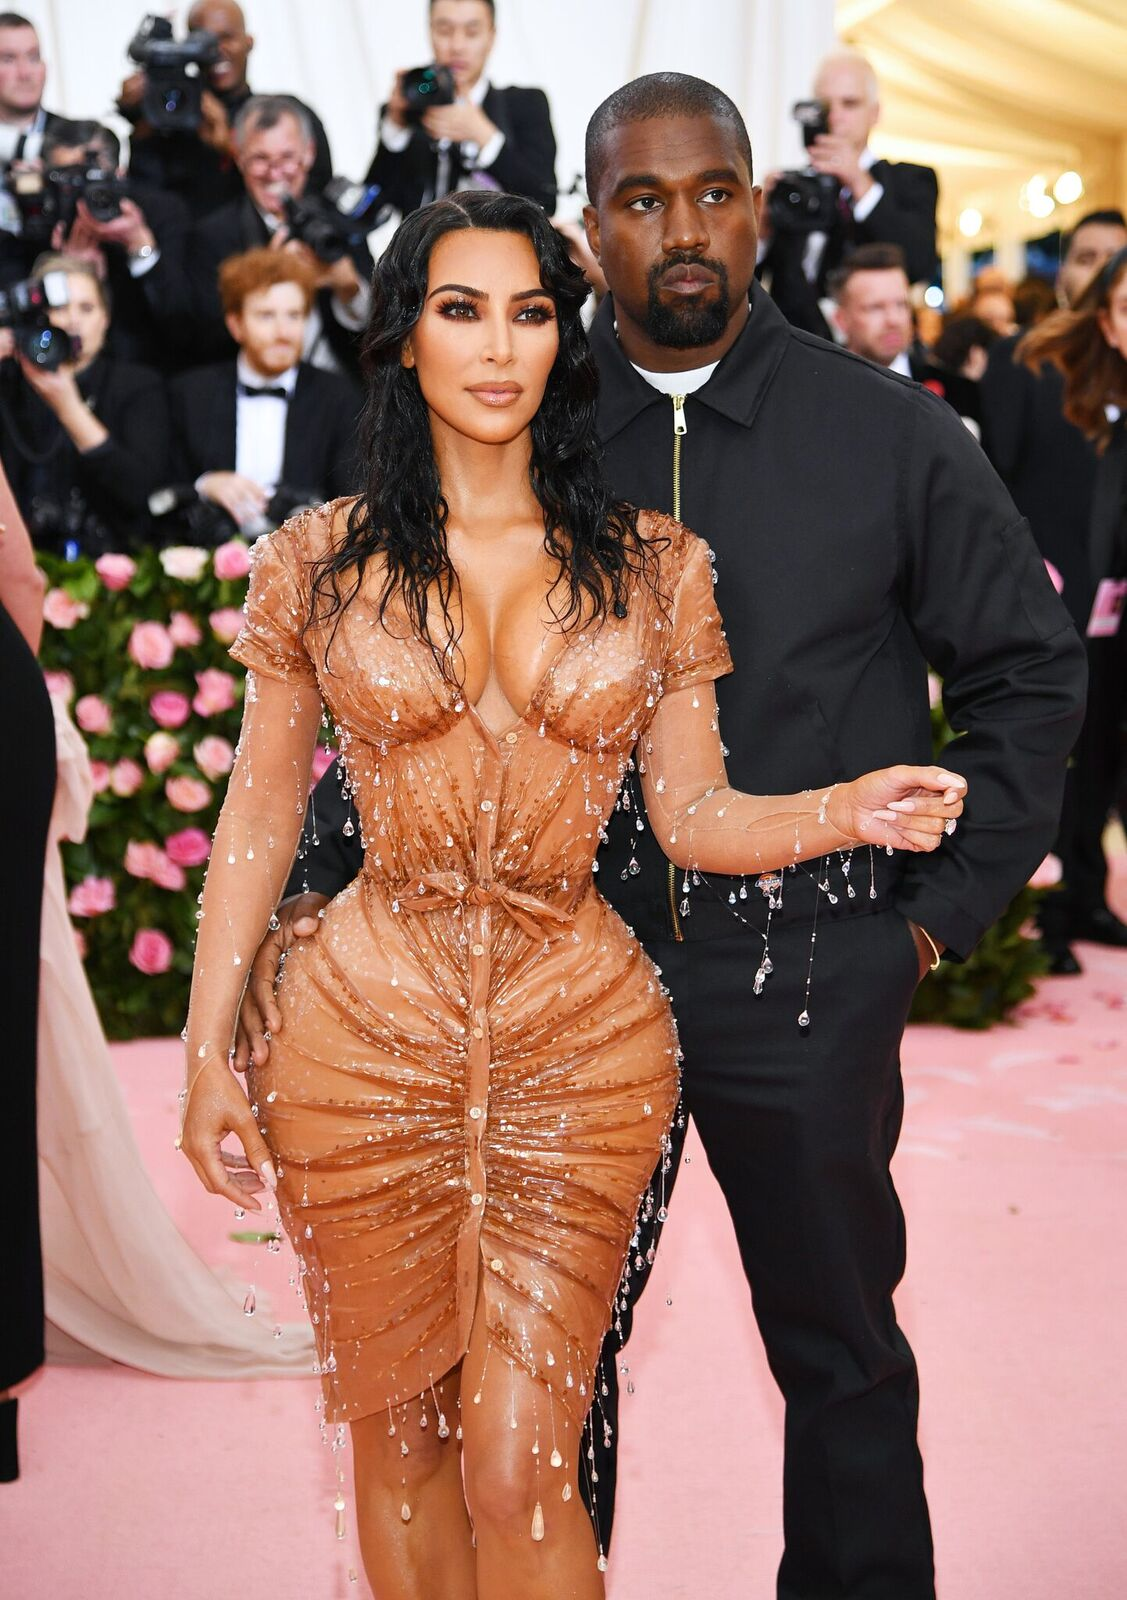 Kim Kardashian West and Kanye West attend The 2019 Met Gala Celebrating Camp: Notes on Fashion at Metropolitan Museum of Art on May 06, 2019 in New York City | Photo: Getty Images